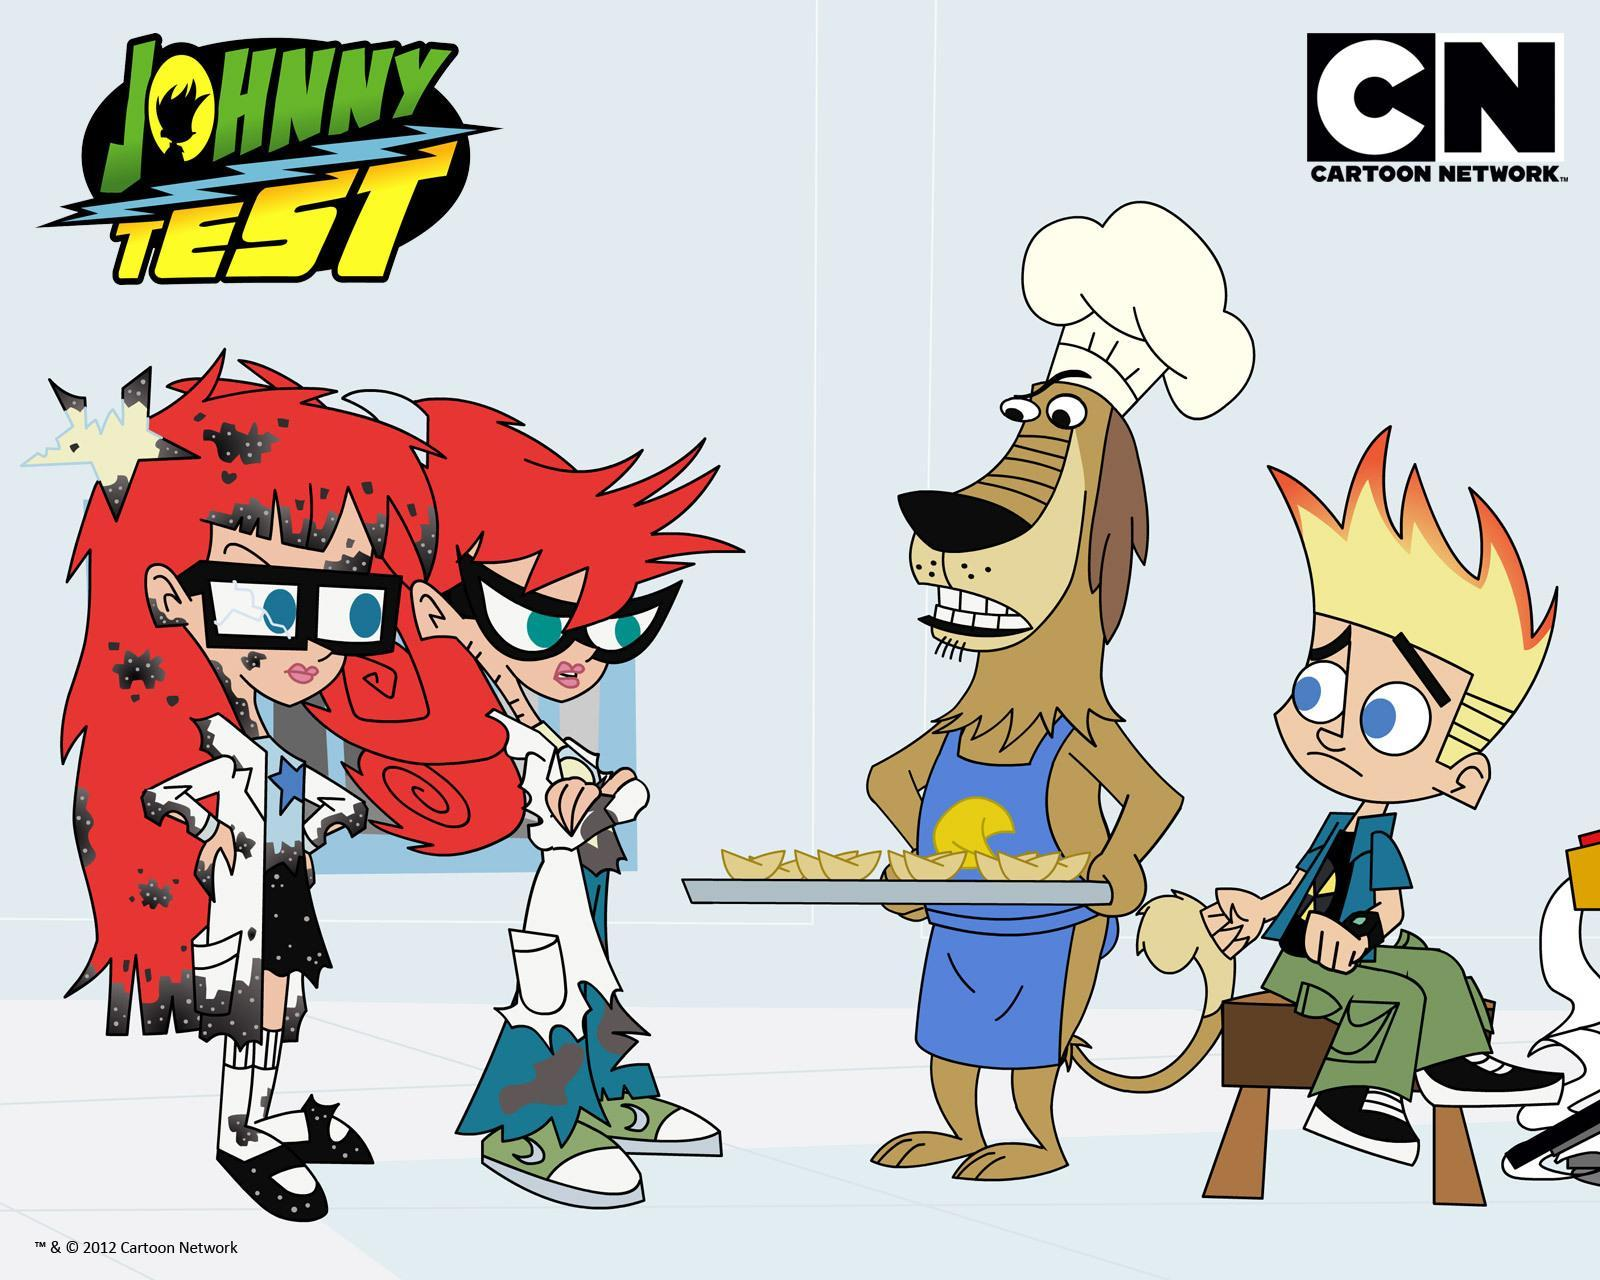 Johnny Test...